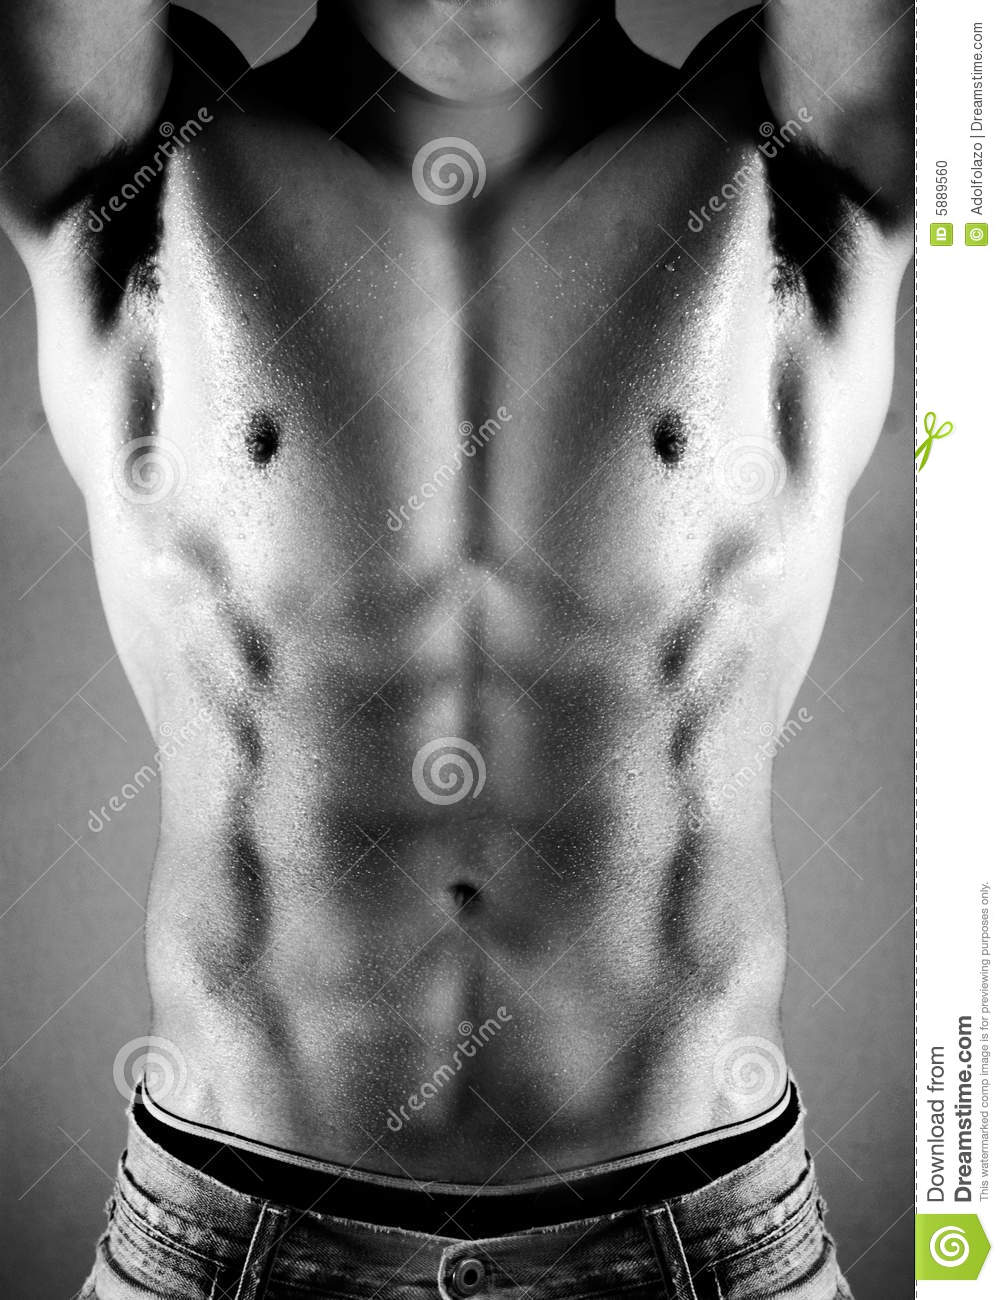 Strong Athletic Man Fitness Model Torso Showing Muscular